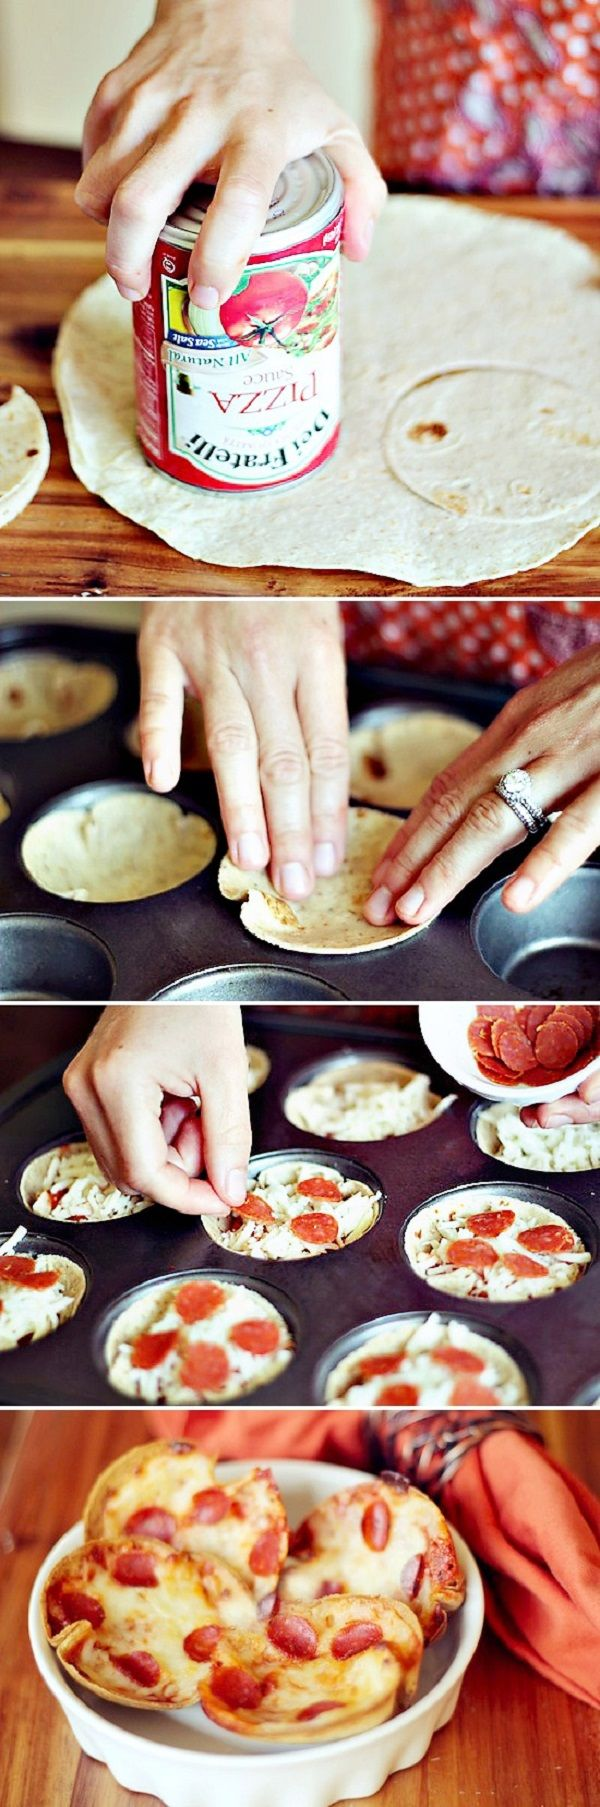 Mini Tortilla Pizzas. I've been making these for years in a skillet ...